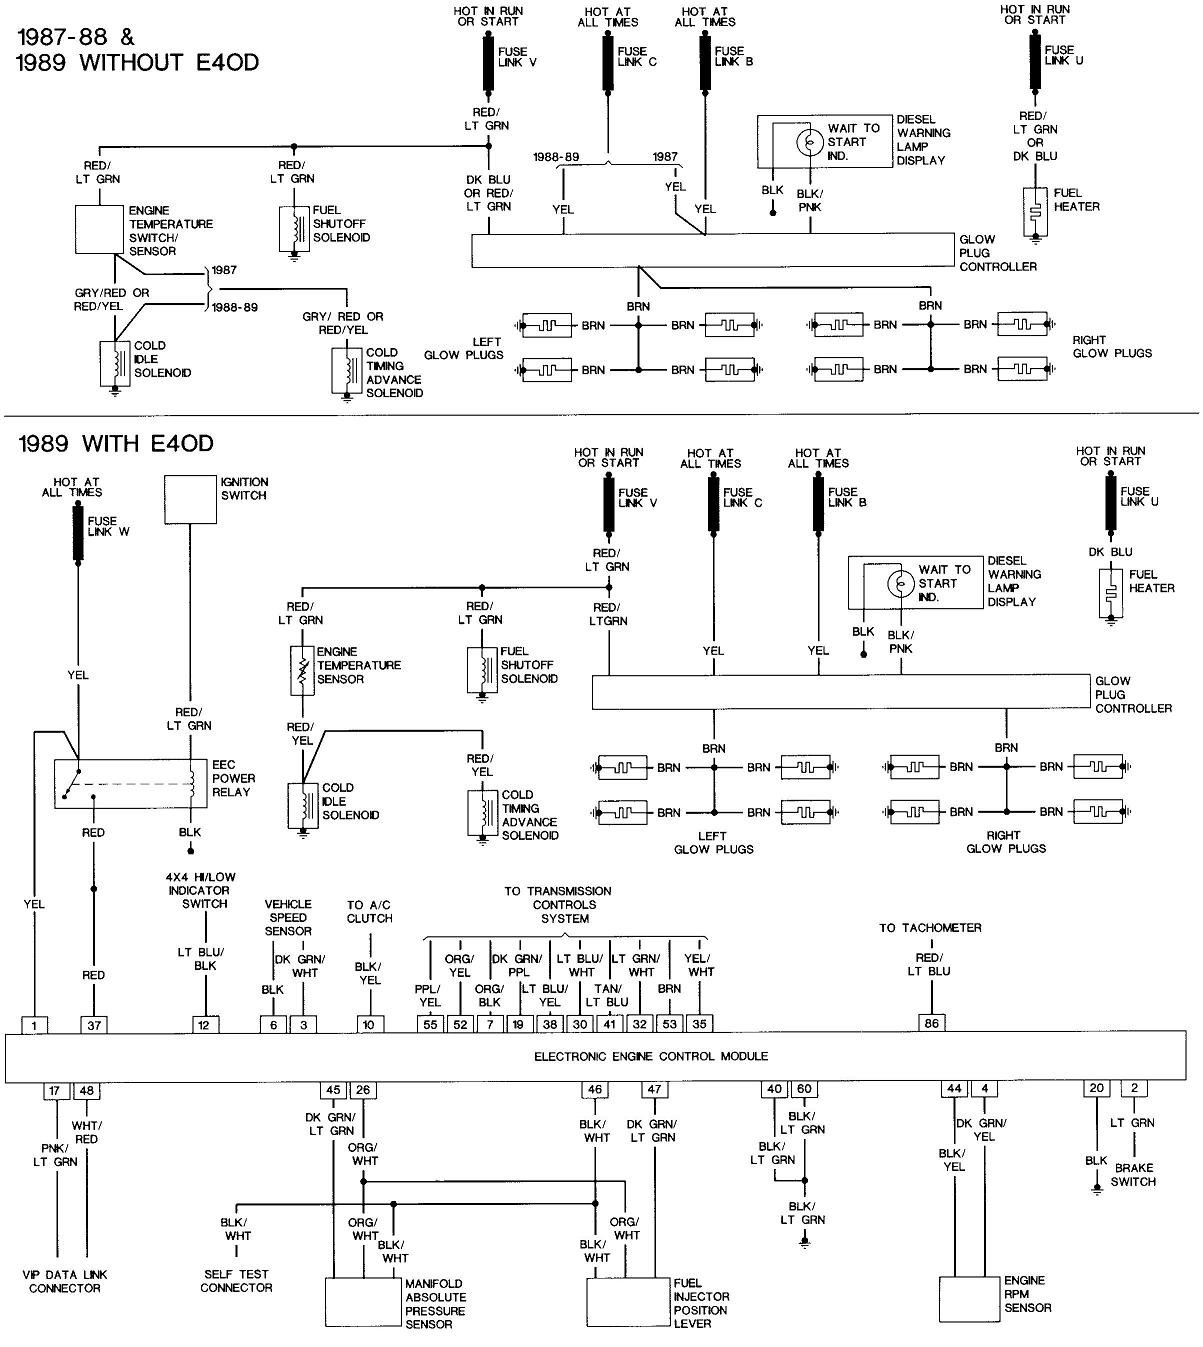 2011 05 08_073846_1 f450 wiring diagram pto wiring diagram f450 \u2022 wiring diagrams j 7.3 idi glow plug wiring diagram at fashall.co